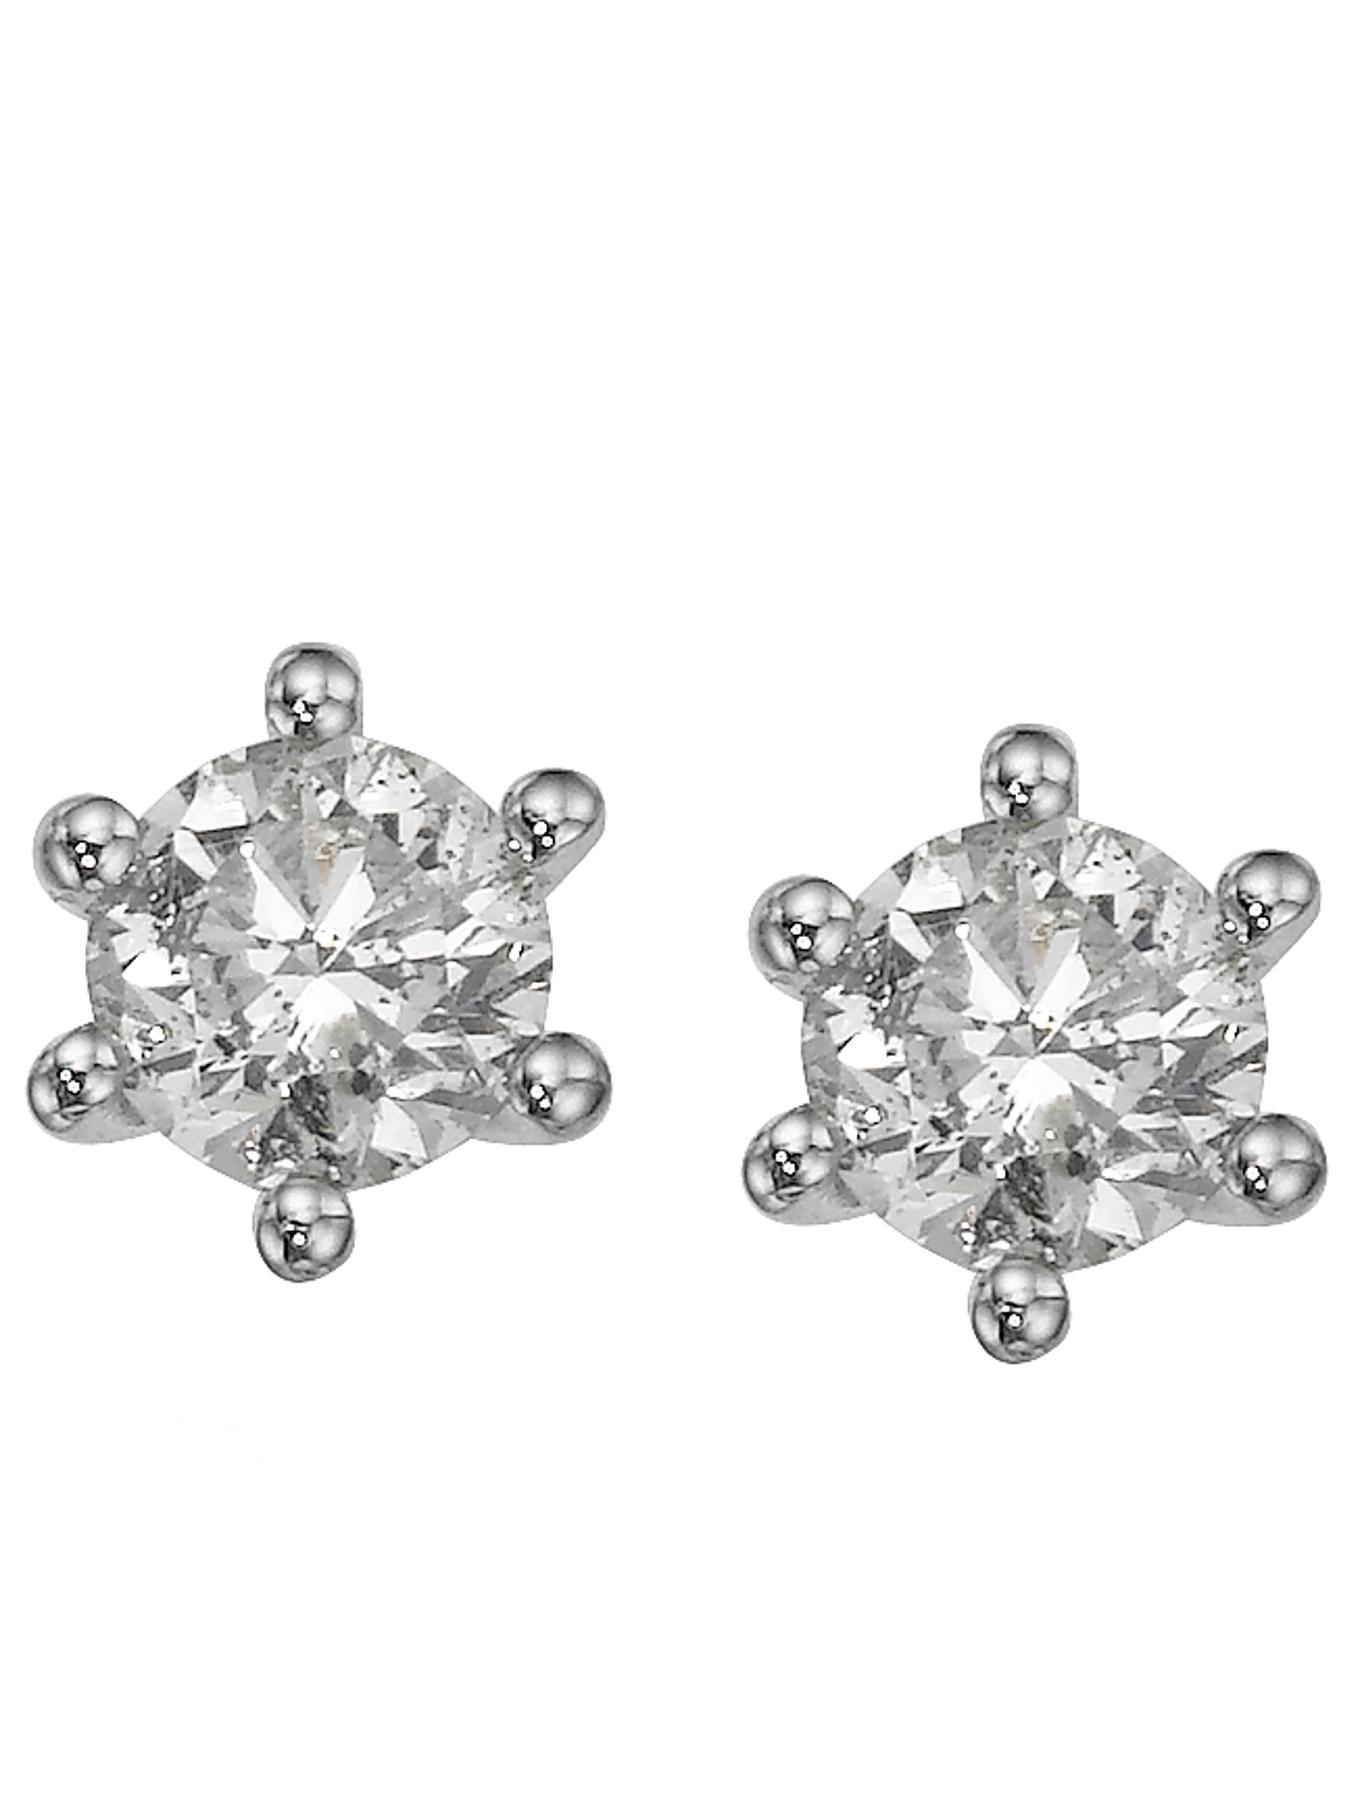 Sterling Silver 25 Point Diamond Solitaire Earrings